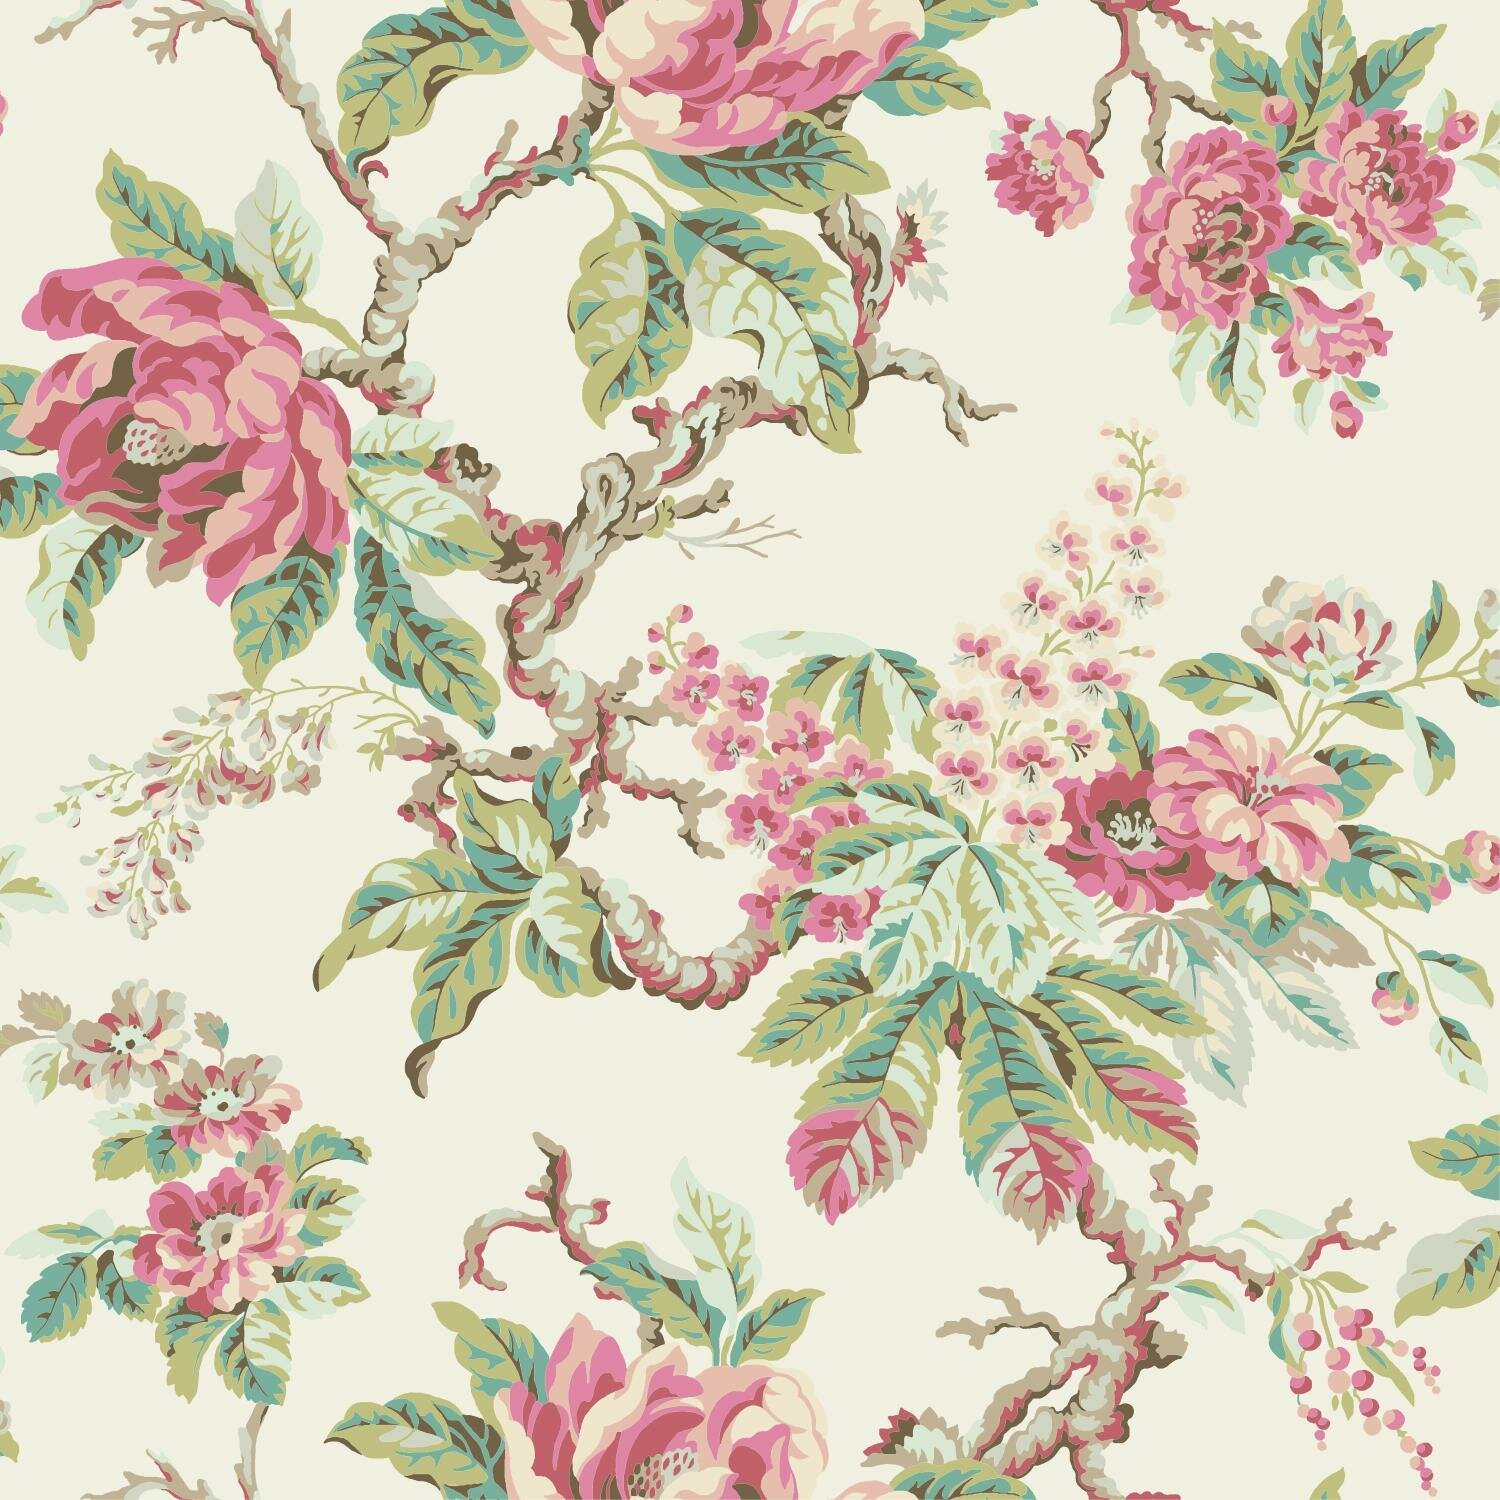 Riddell 33 L X 20 5 W Floral And Botanical Wallpaper Roll Joss